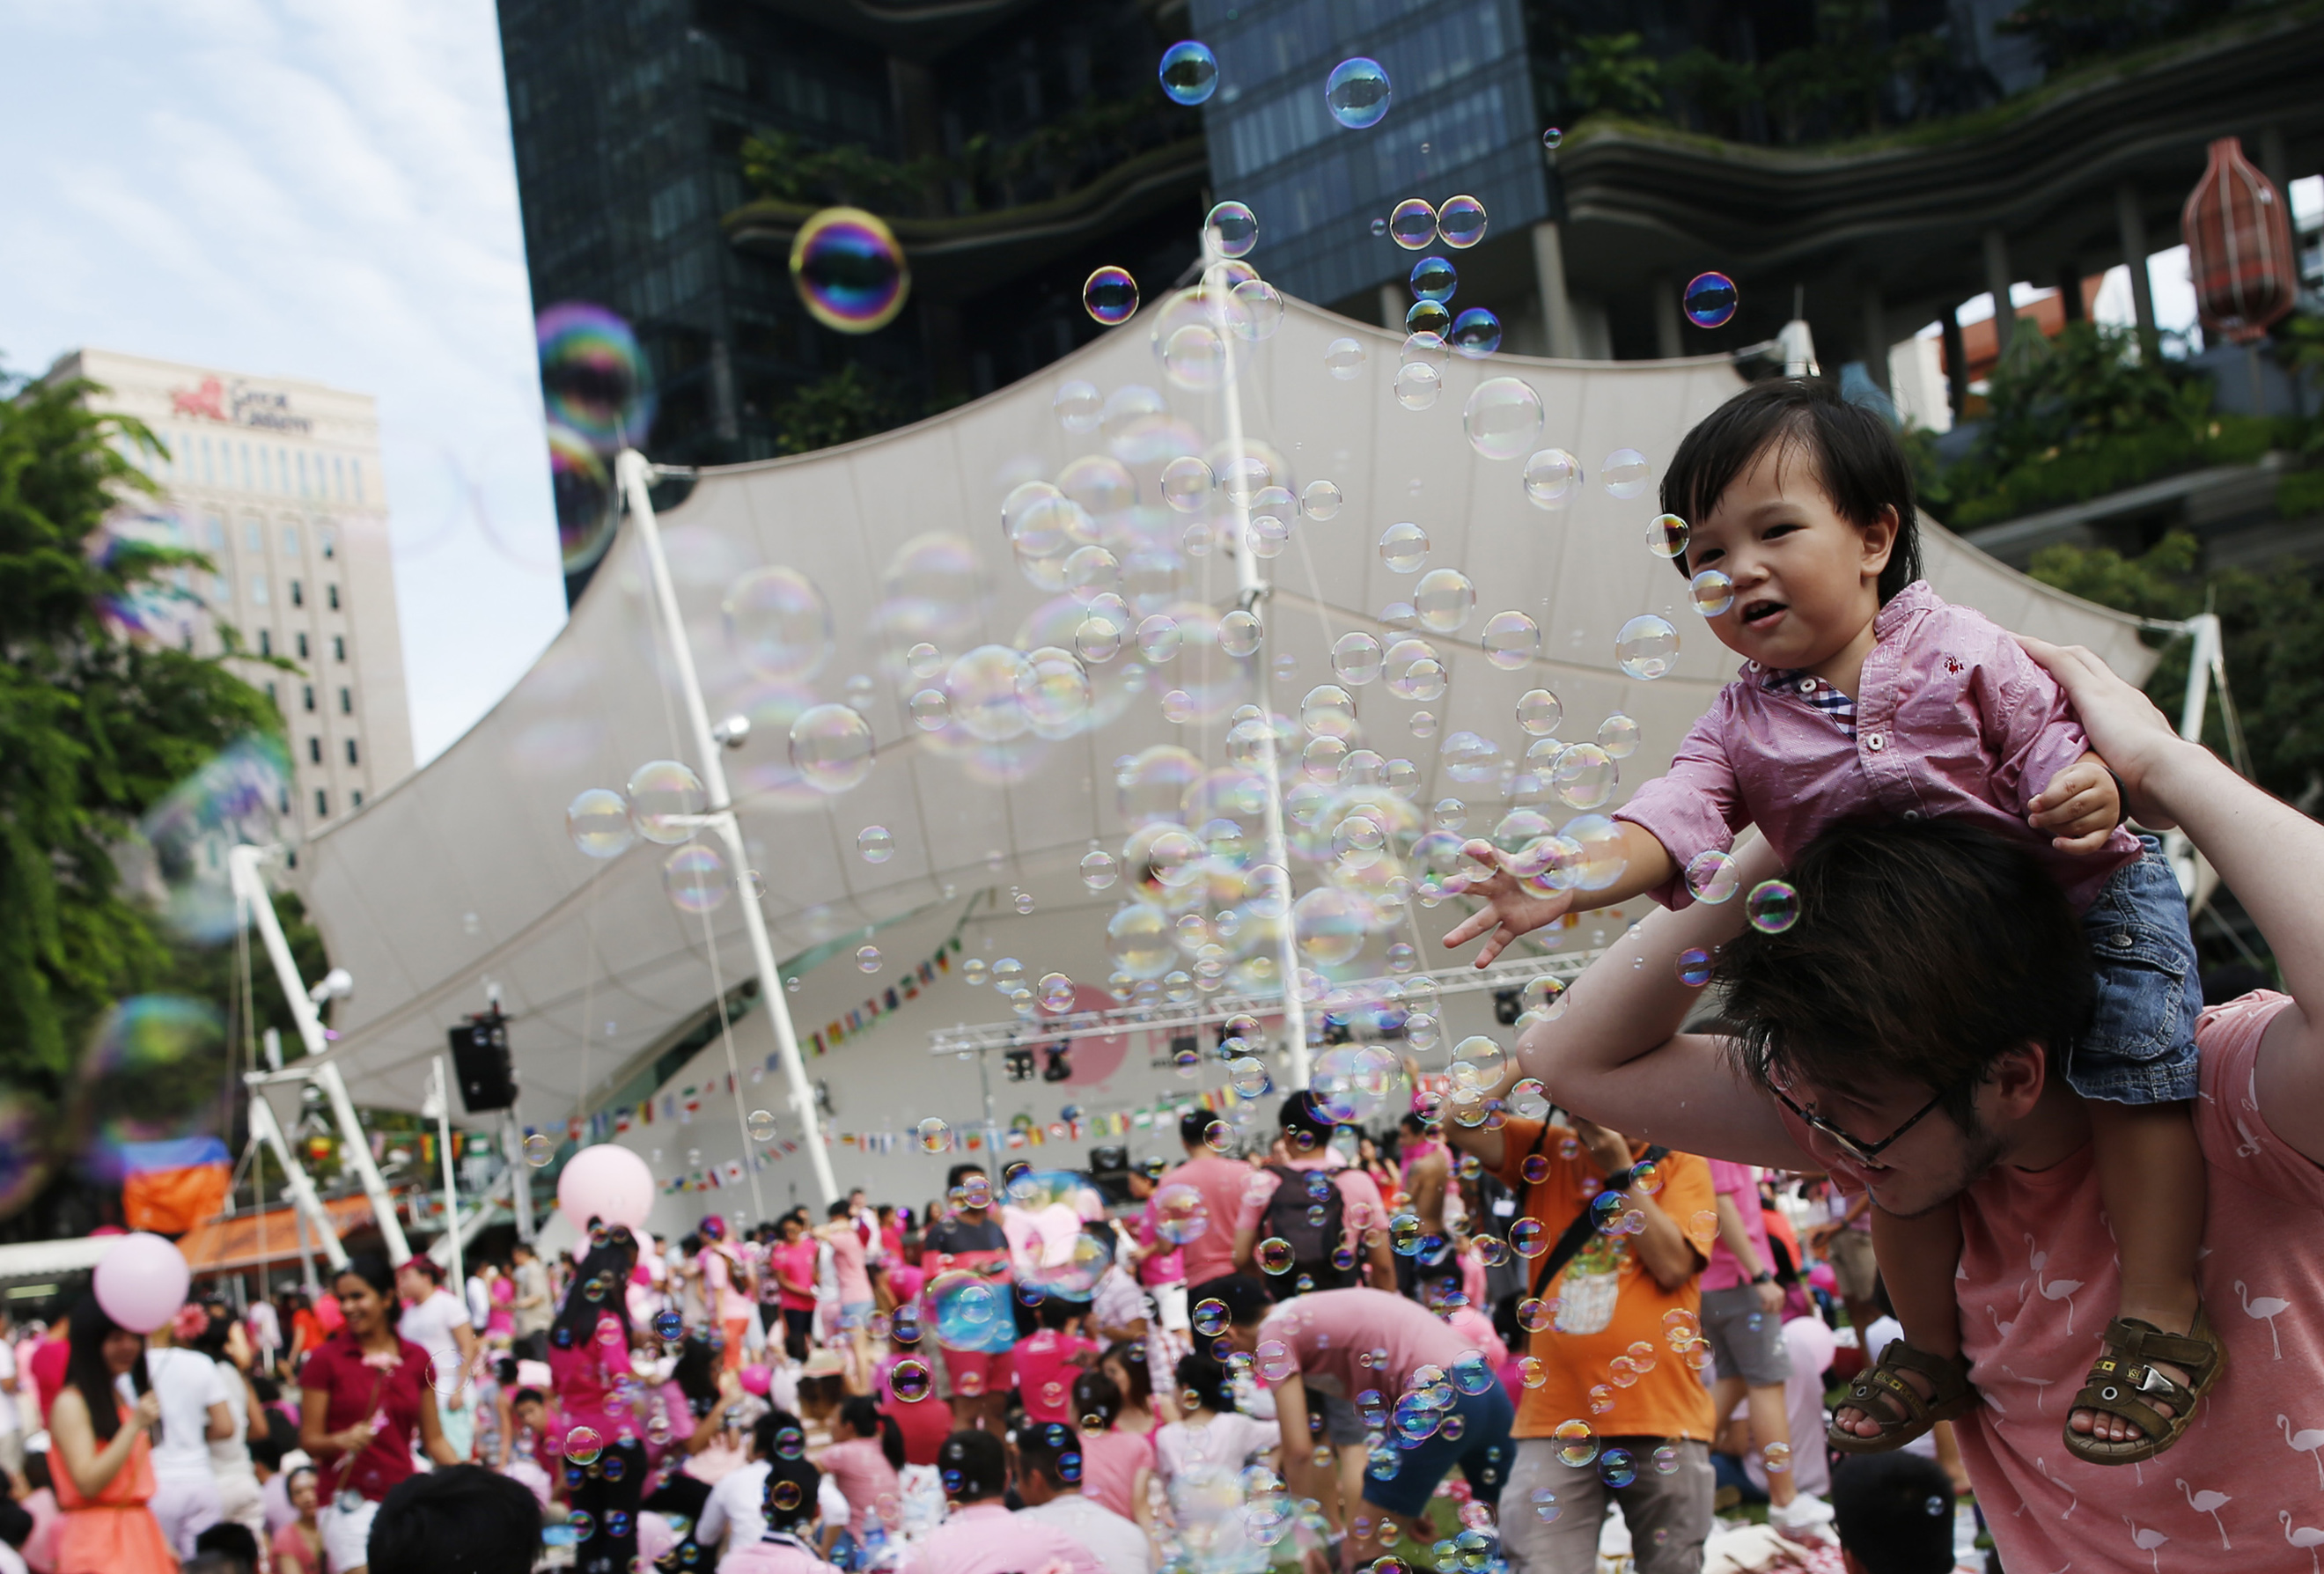 A toddler plays with bubbles during the Pink Dot parade at the Speakers' Corner in Hong Lim Park in Singapore June 28, 2014.